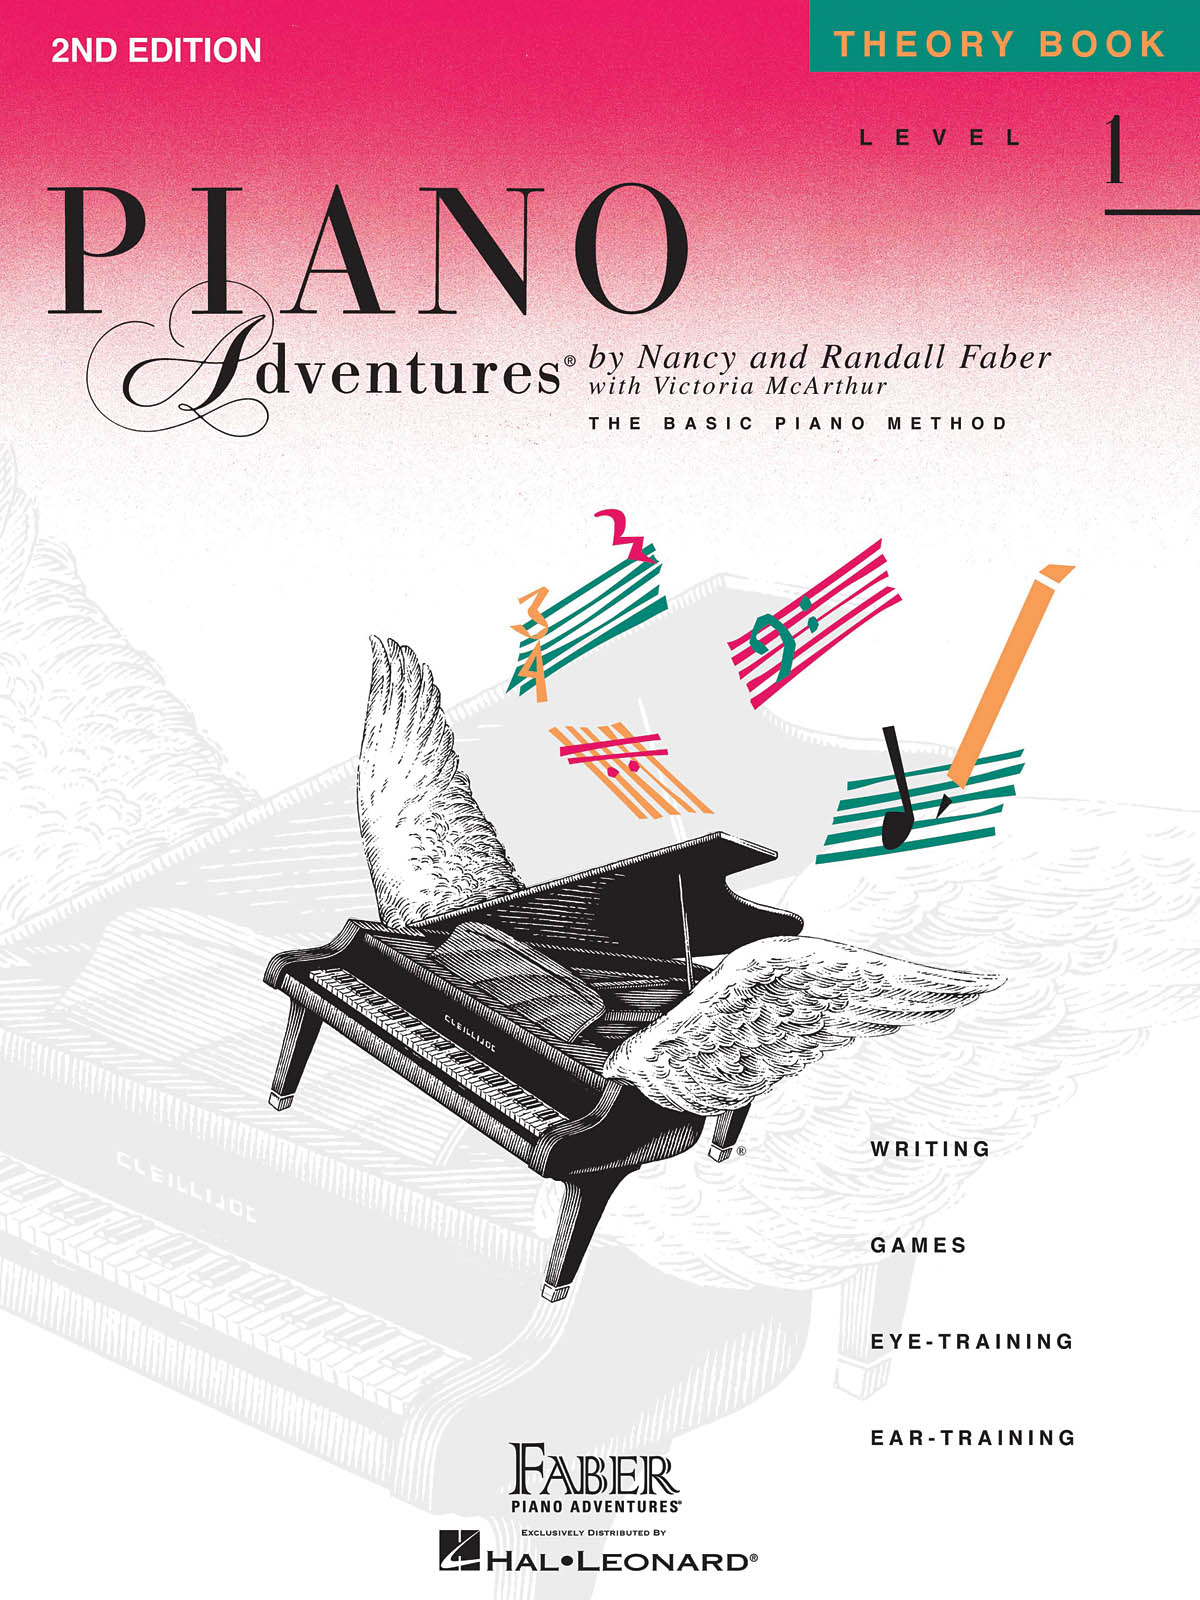 Faber Piano Adventures, Theory Book, Level 1